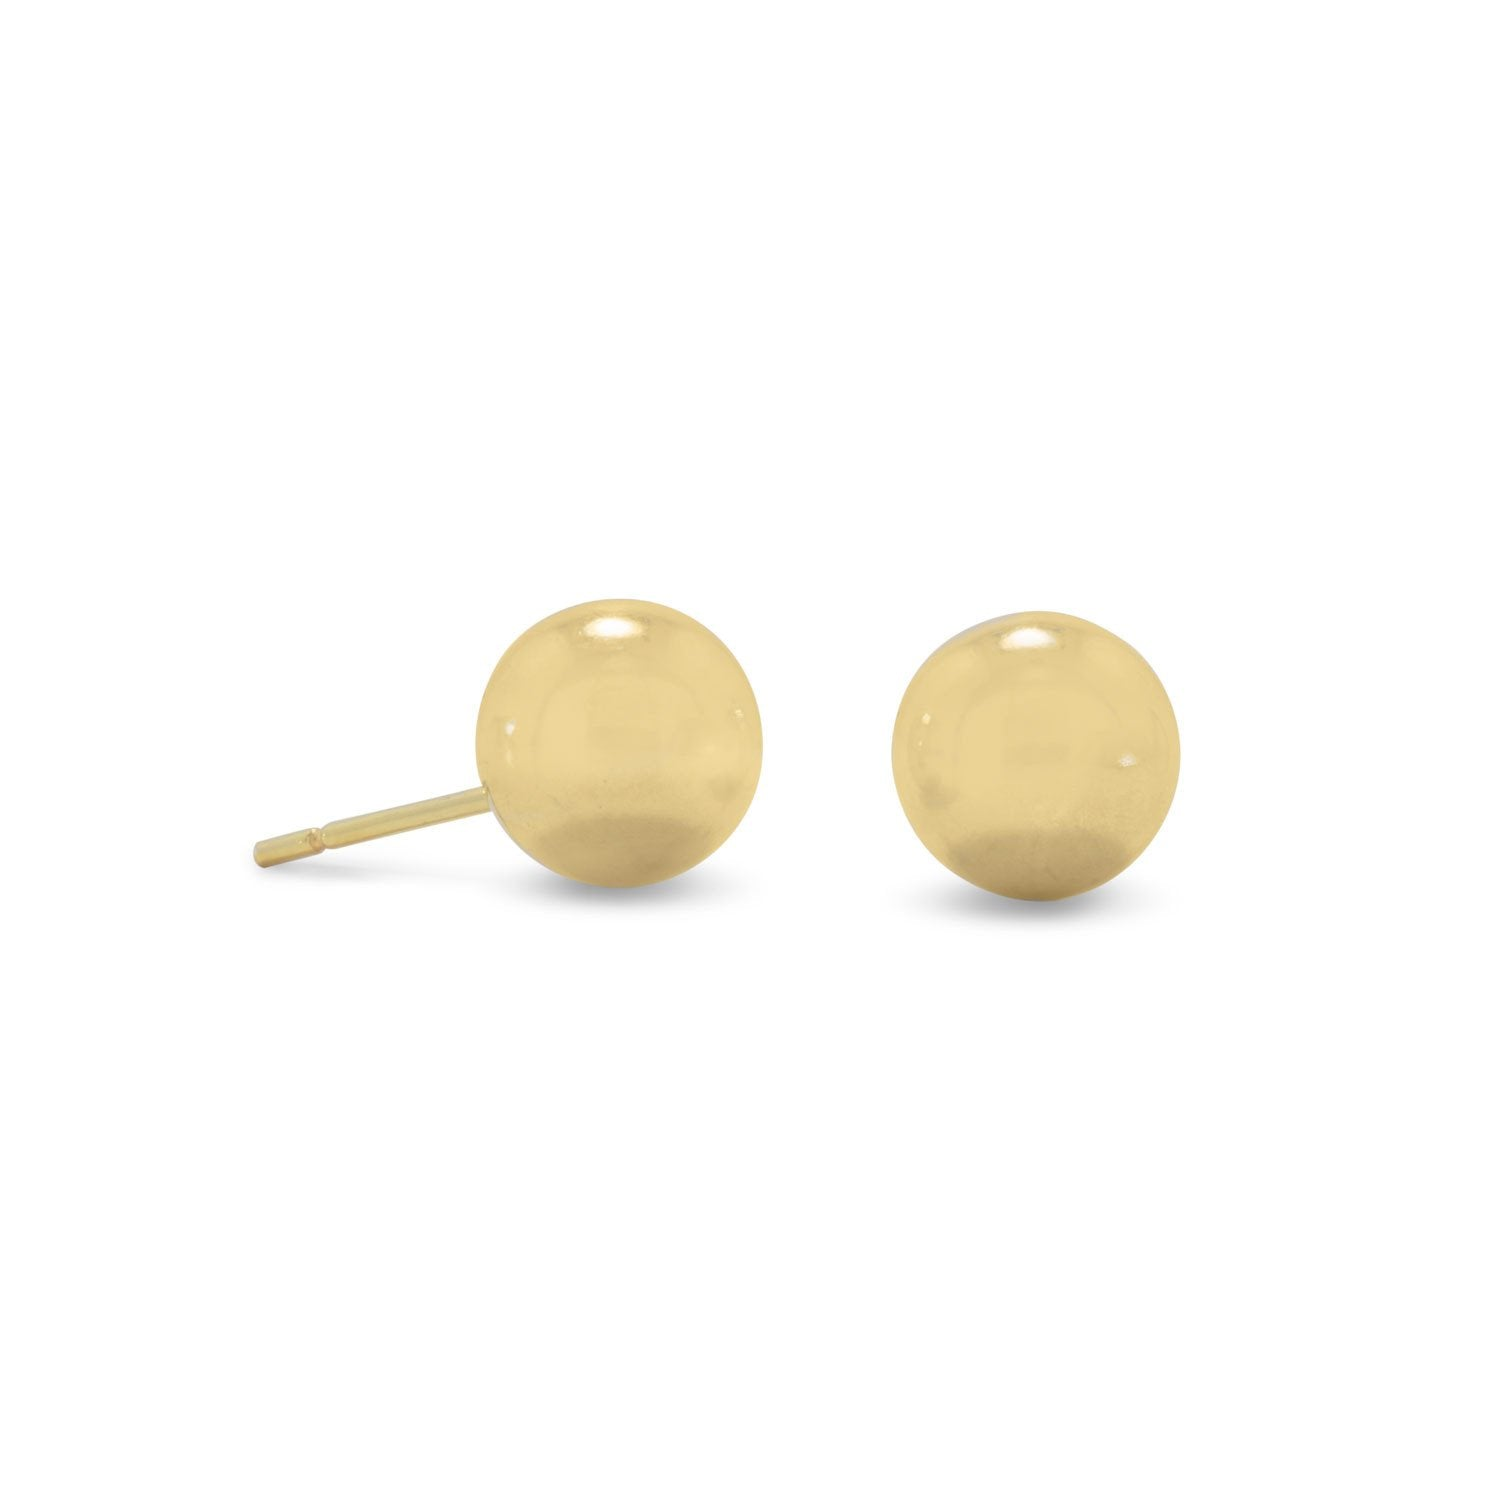 Gold Plated 8mm Ball Stud Earrings - the-southern-magnolia-too